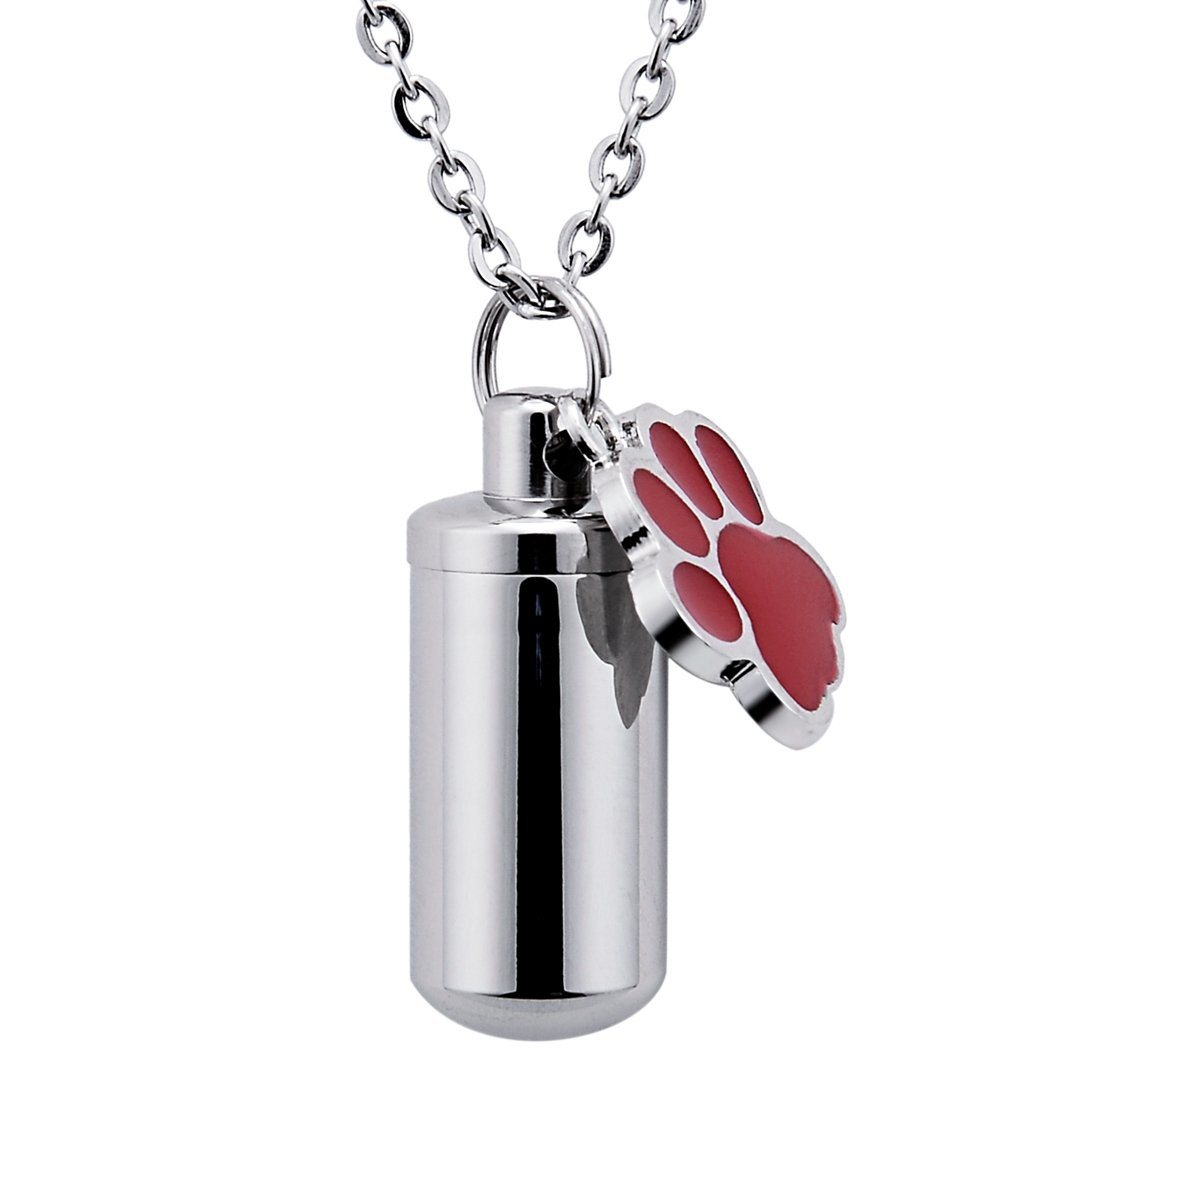 Pet Dog Paw Charm Cylinder Cremation Ashes Urn Necklace Memorial Pendant Keepsake Keychain Stainless Steel Ashes Jewelry BY B00YE0A09X